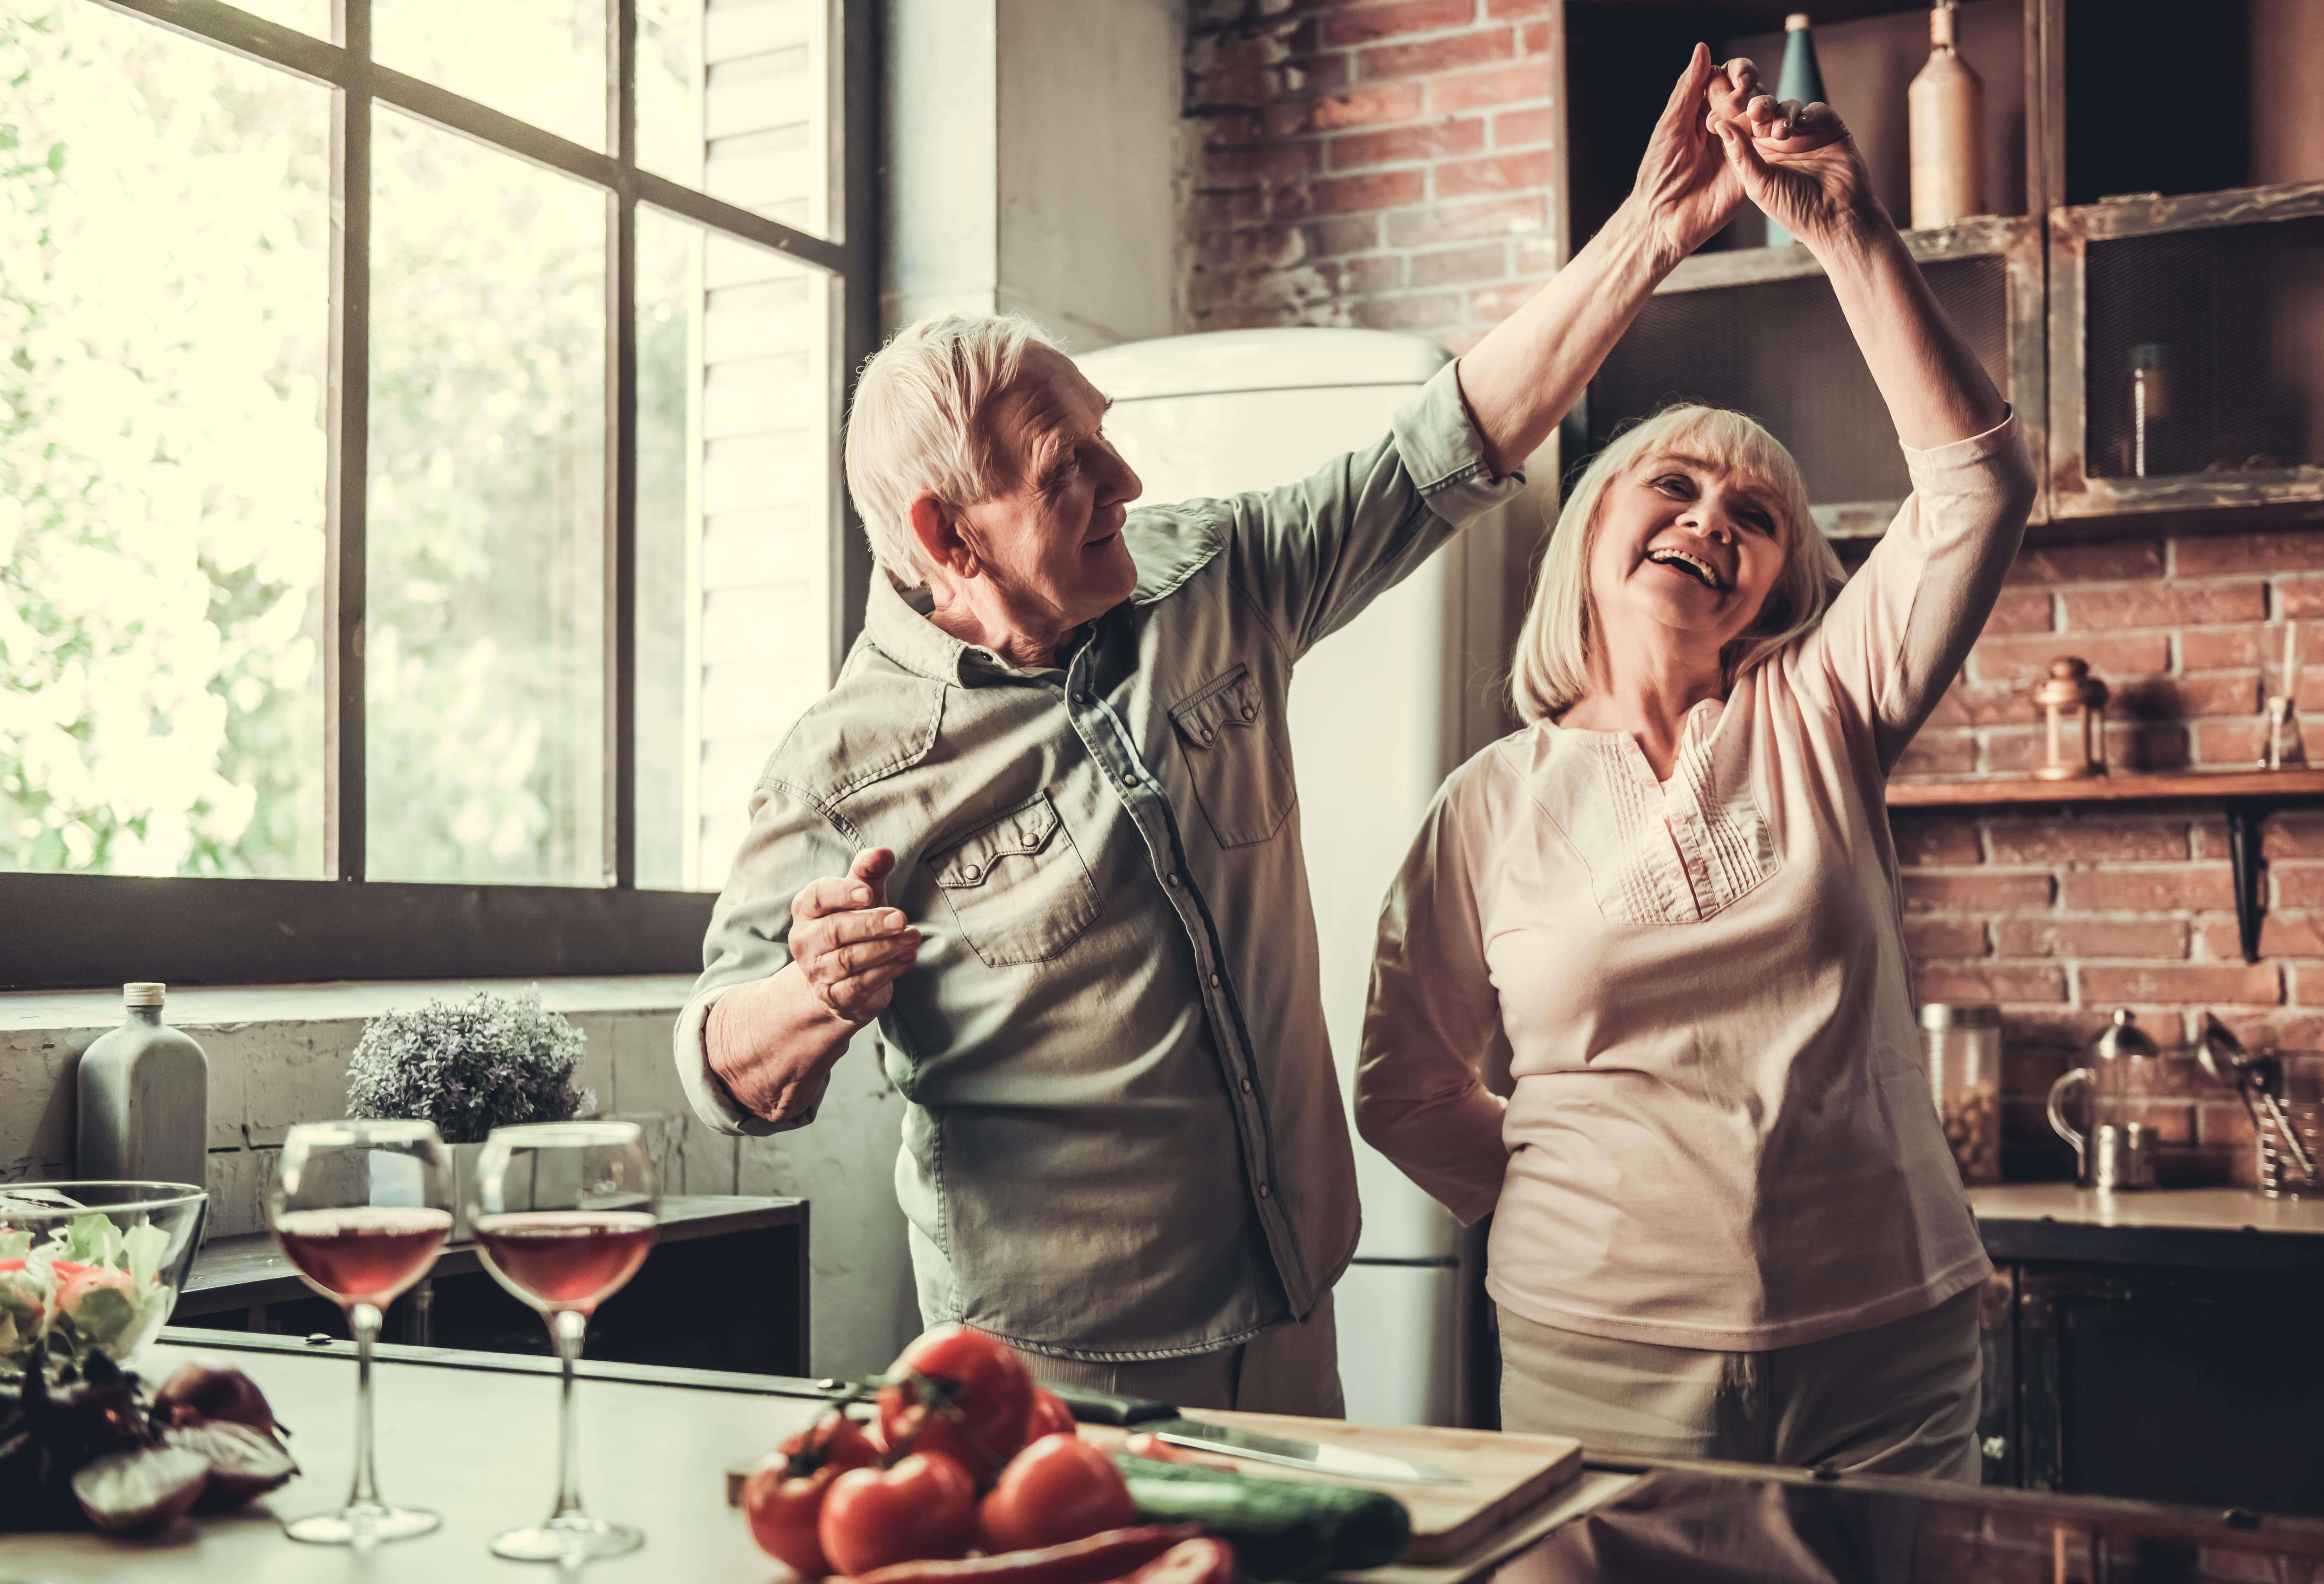 Senior couple dancing together in their kitchen